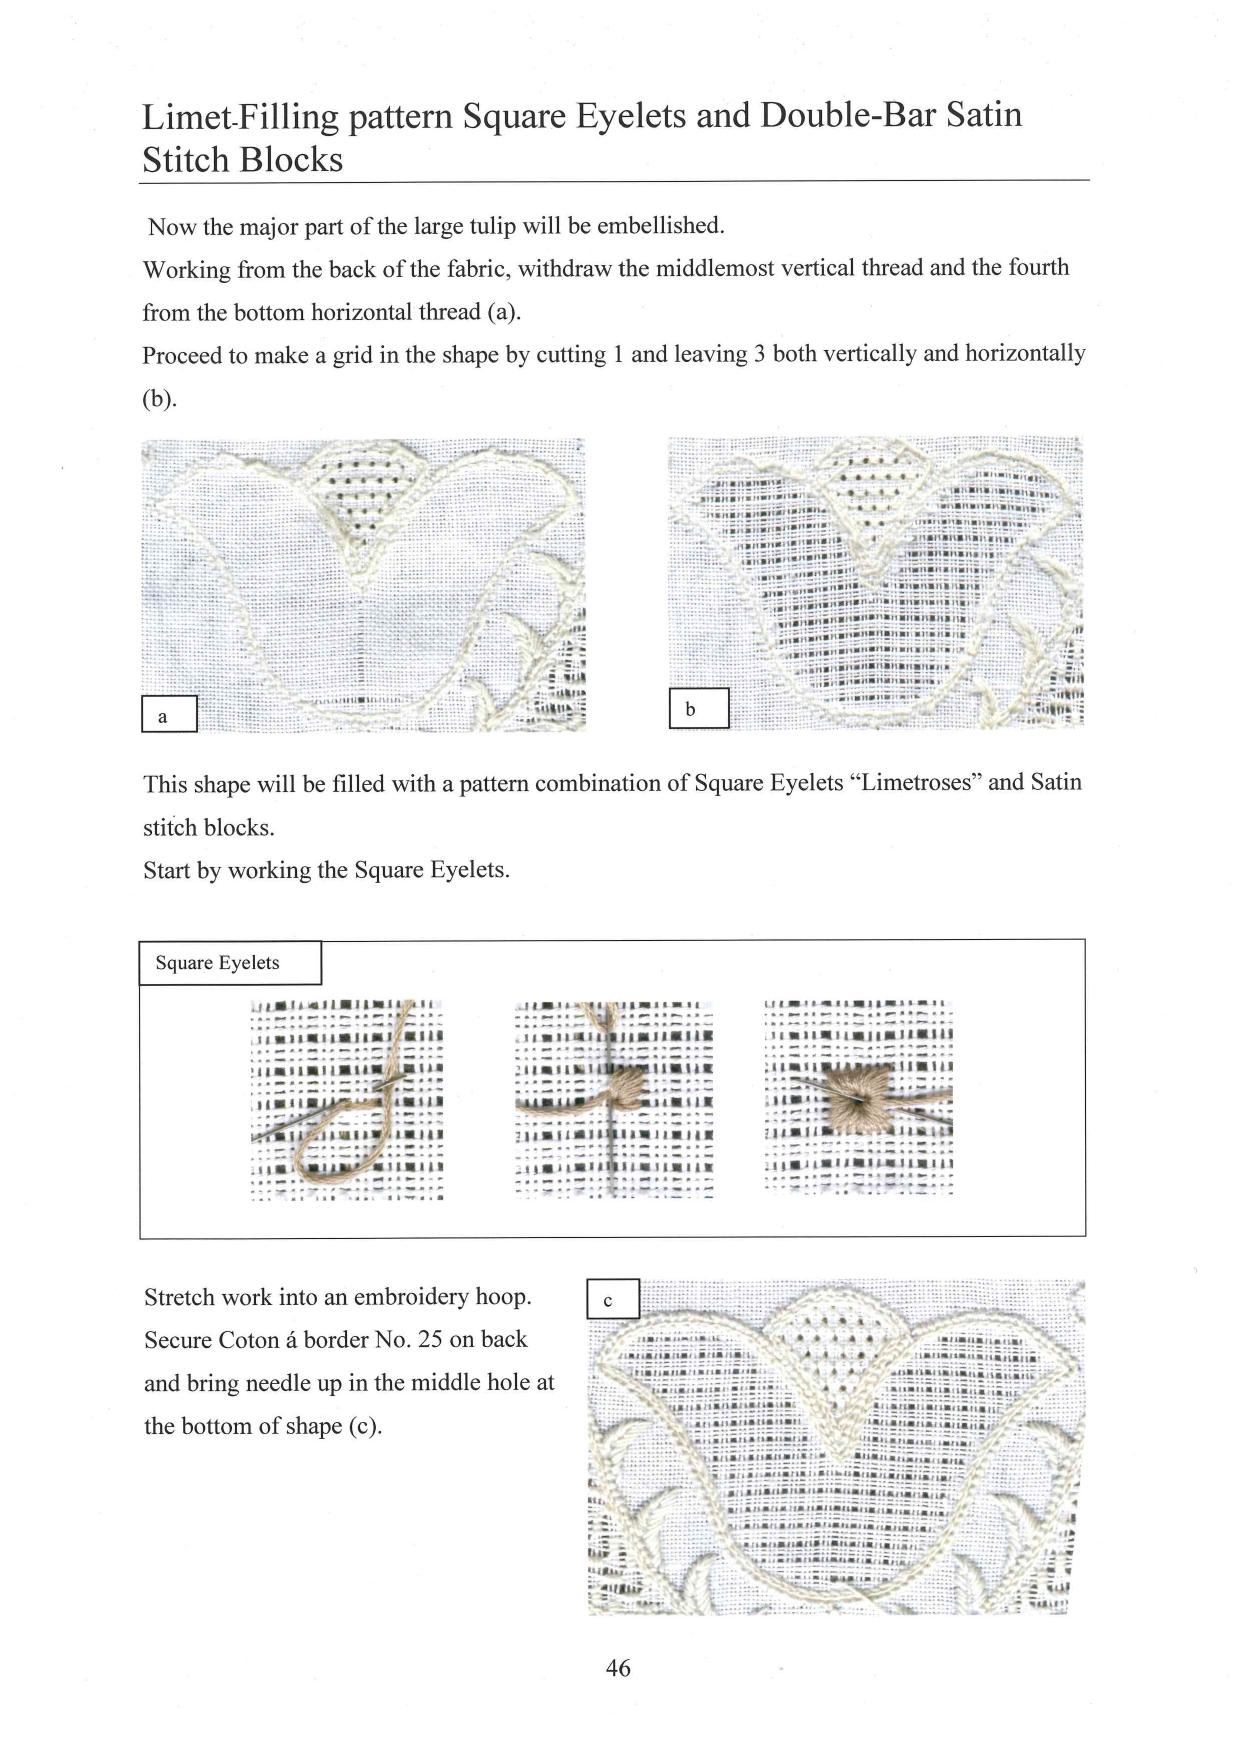 Basic Principles of Schwalm Whitework 5 / 8